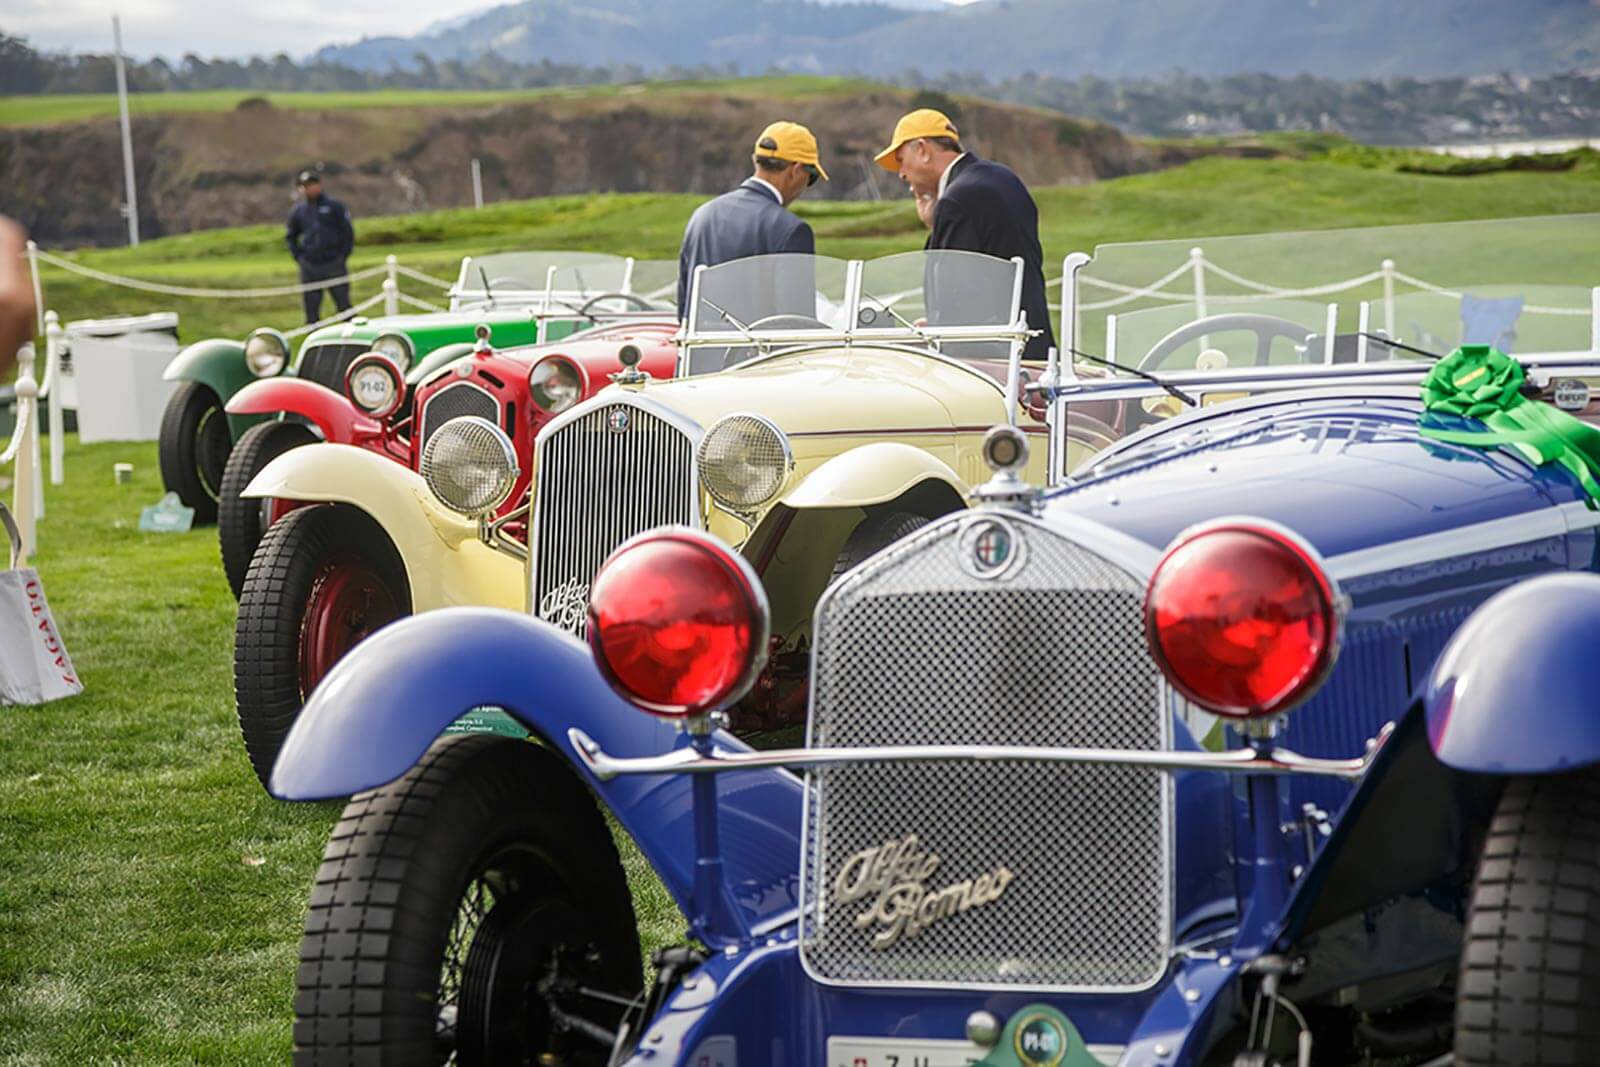 Alfa Romeos lined up at the Pebble Beach Concours d'Elegance